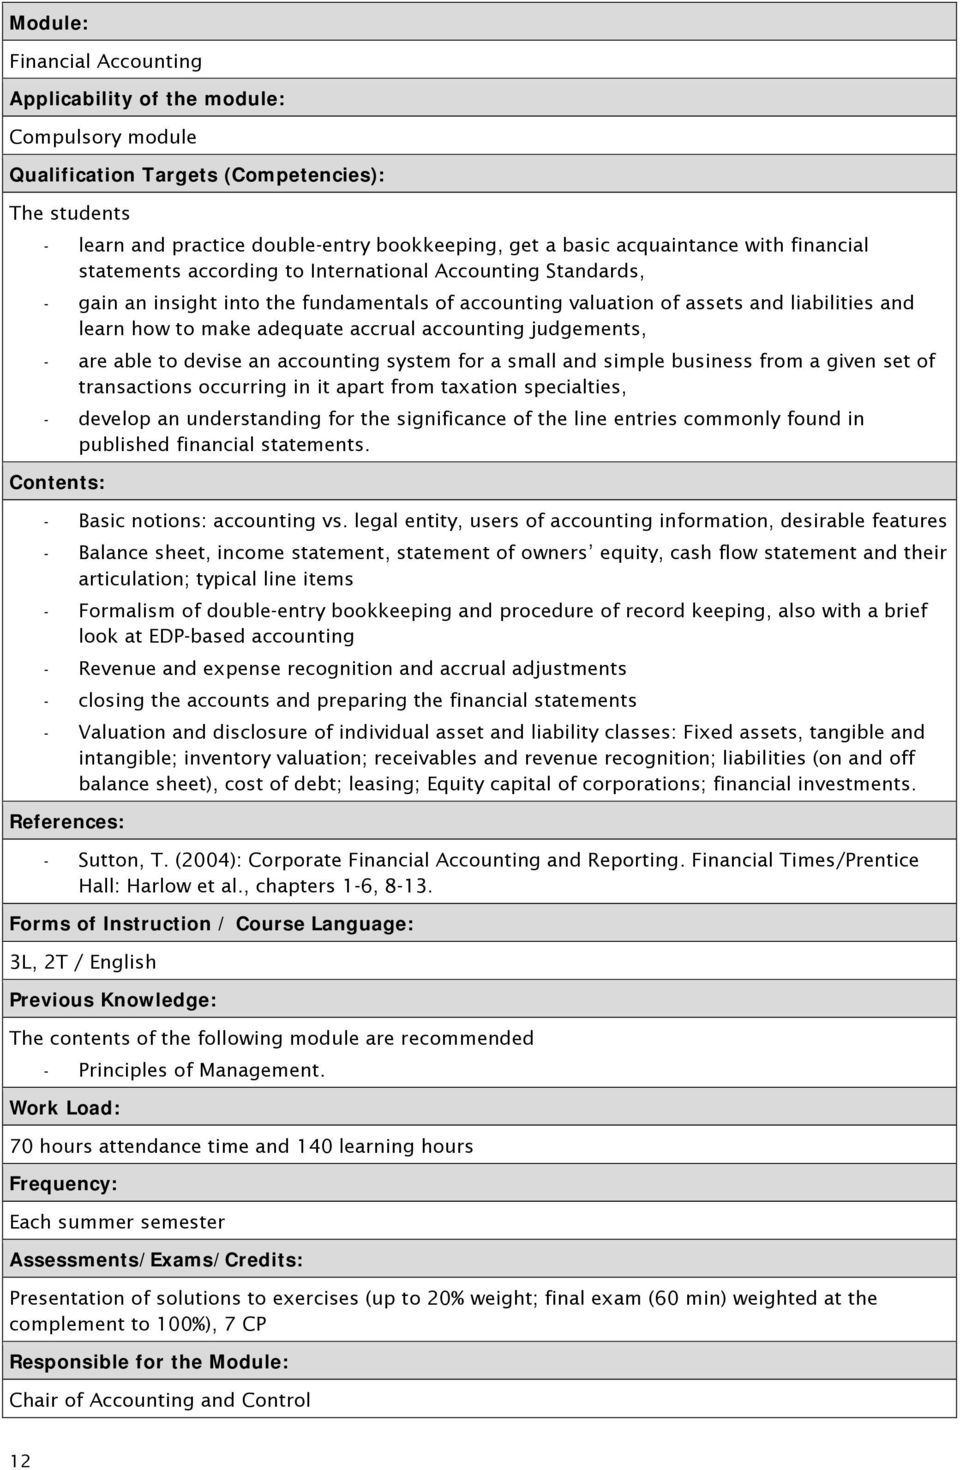 module 6 solution financial accounting